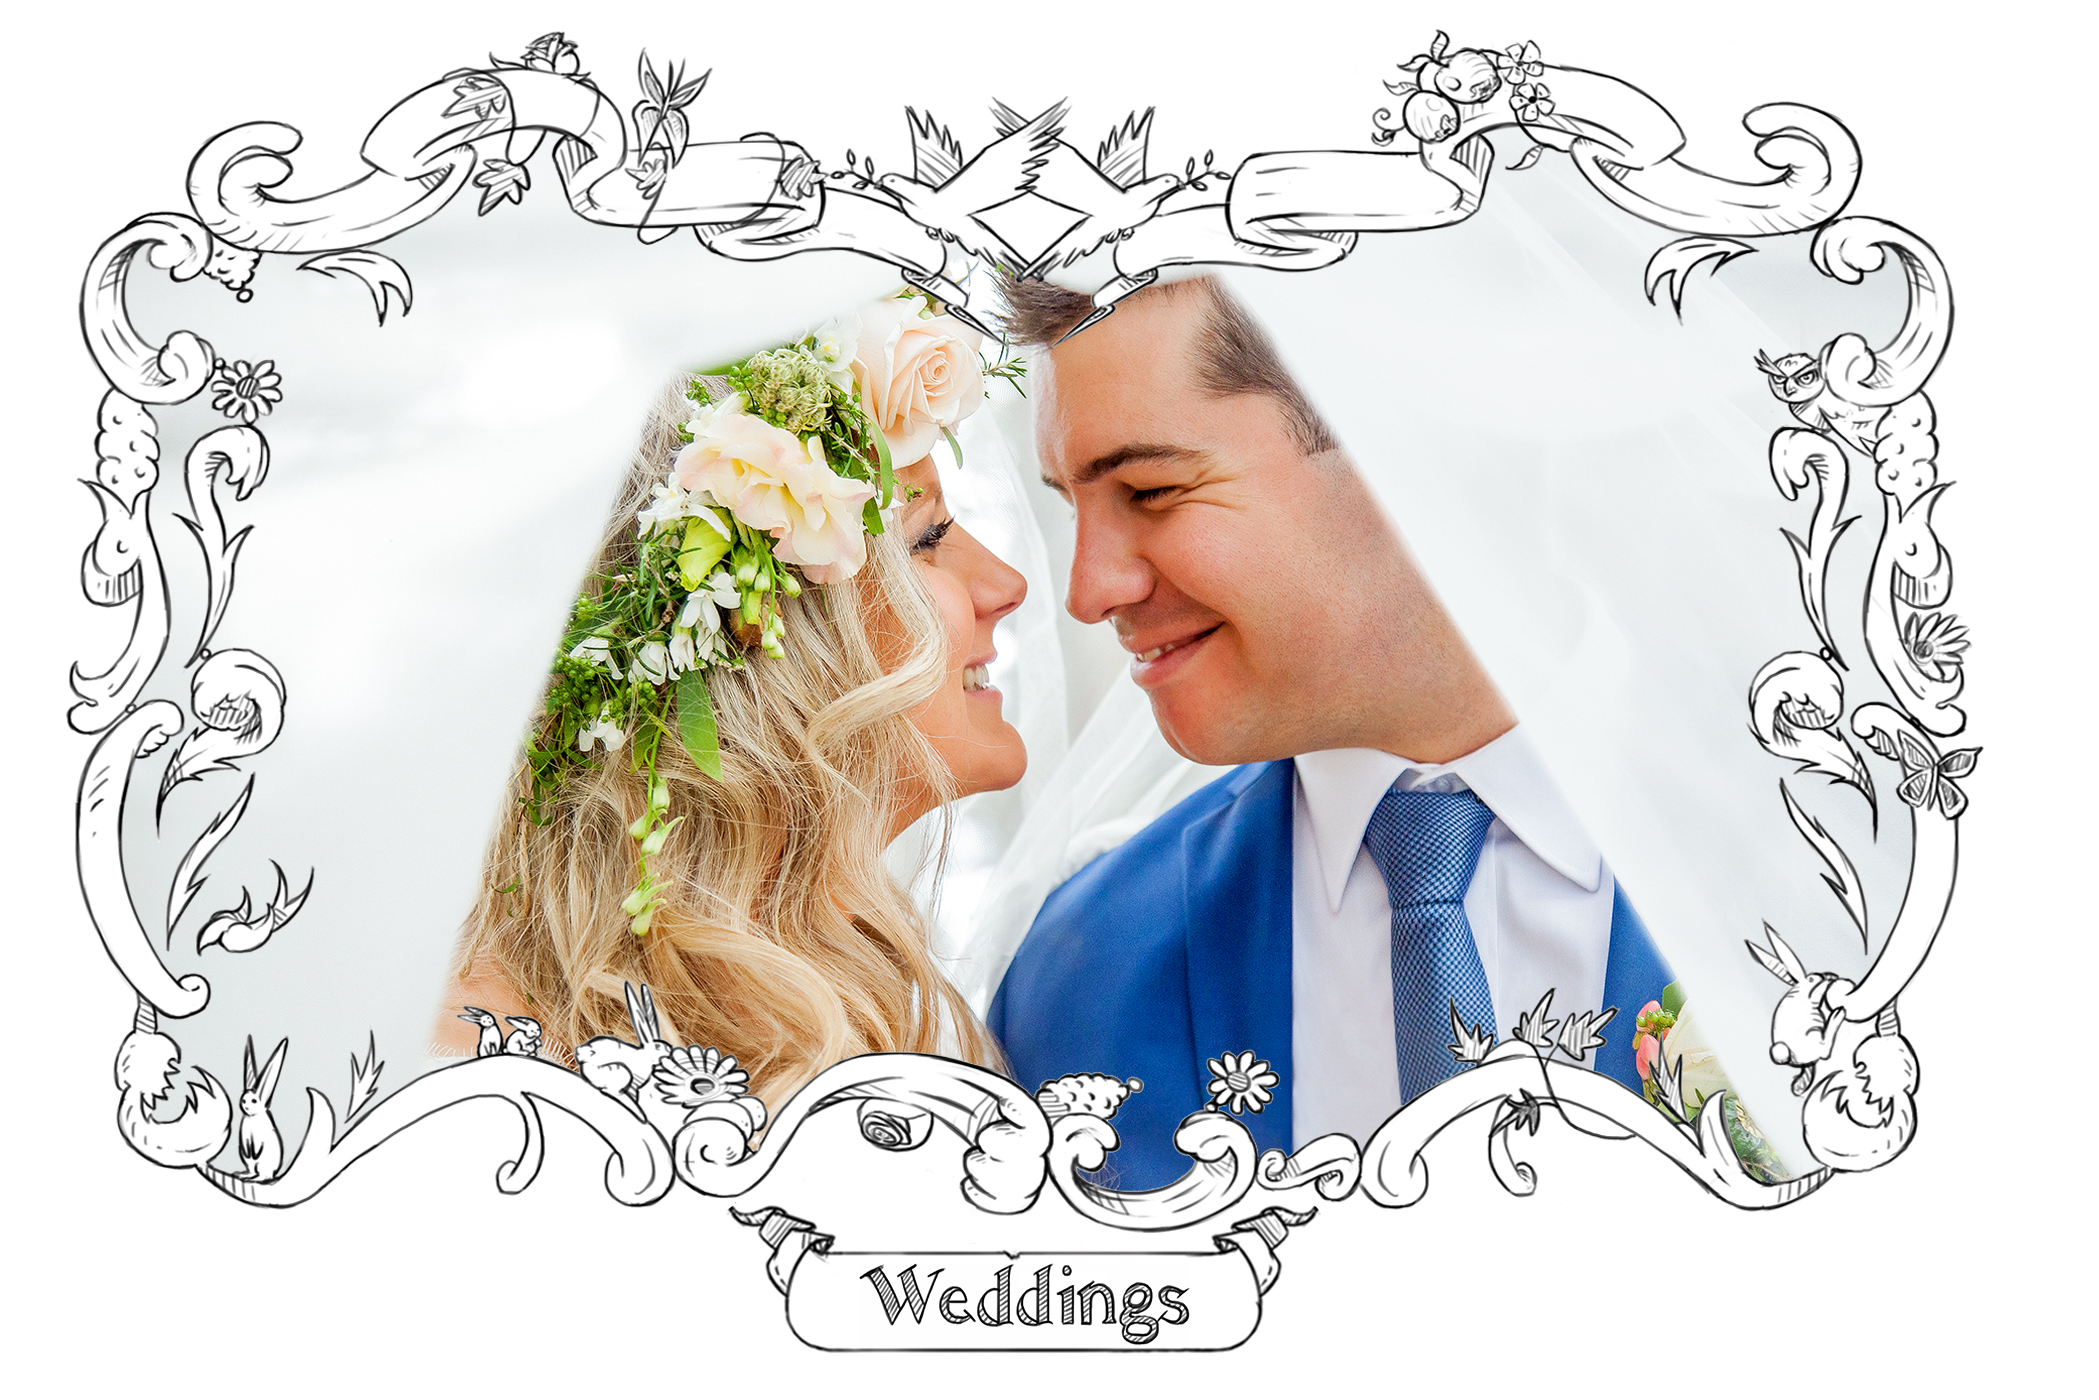 Weddings Page Header L.jpg